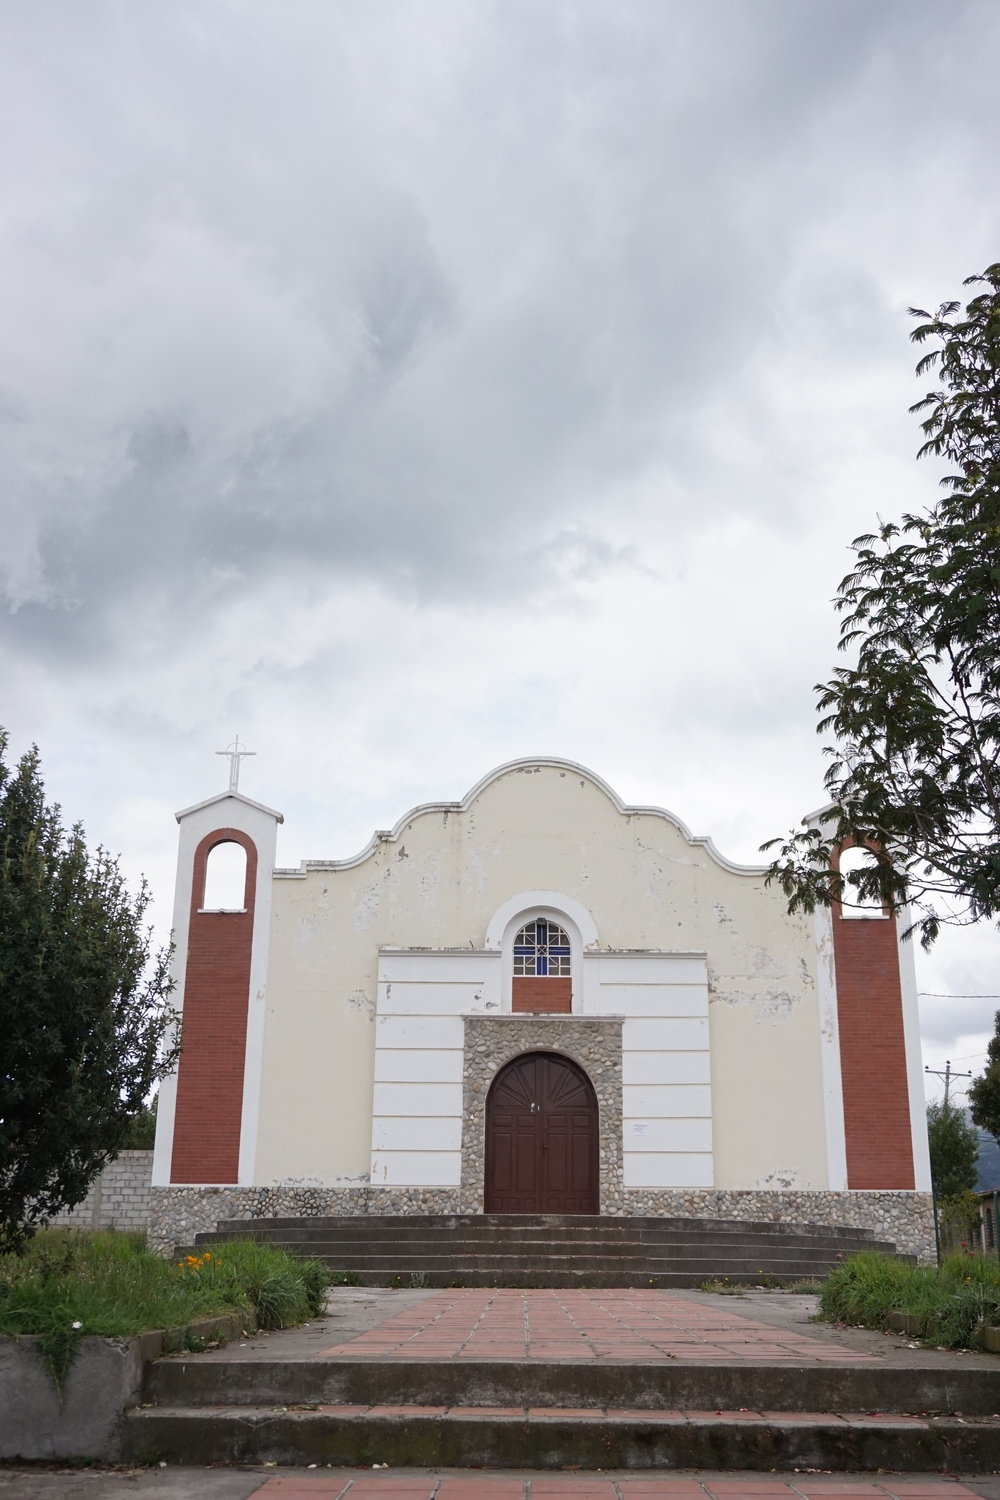 The village's Catholic church